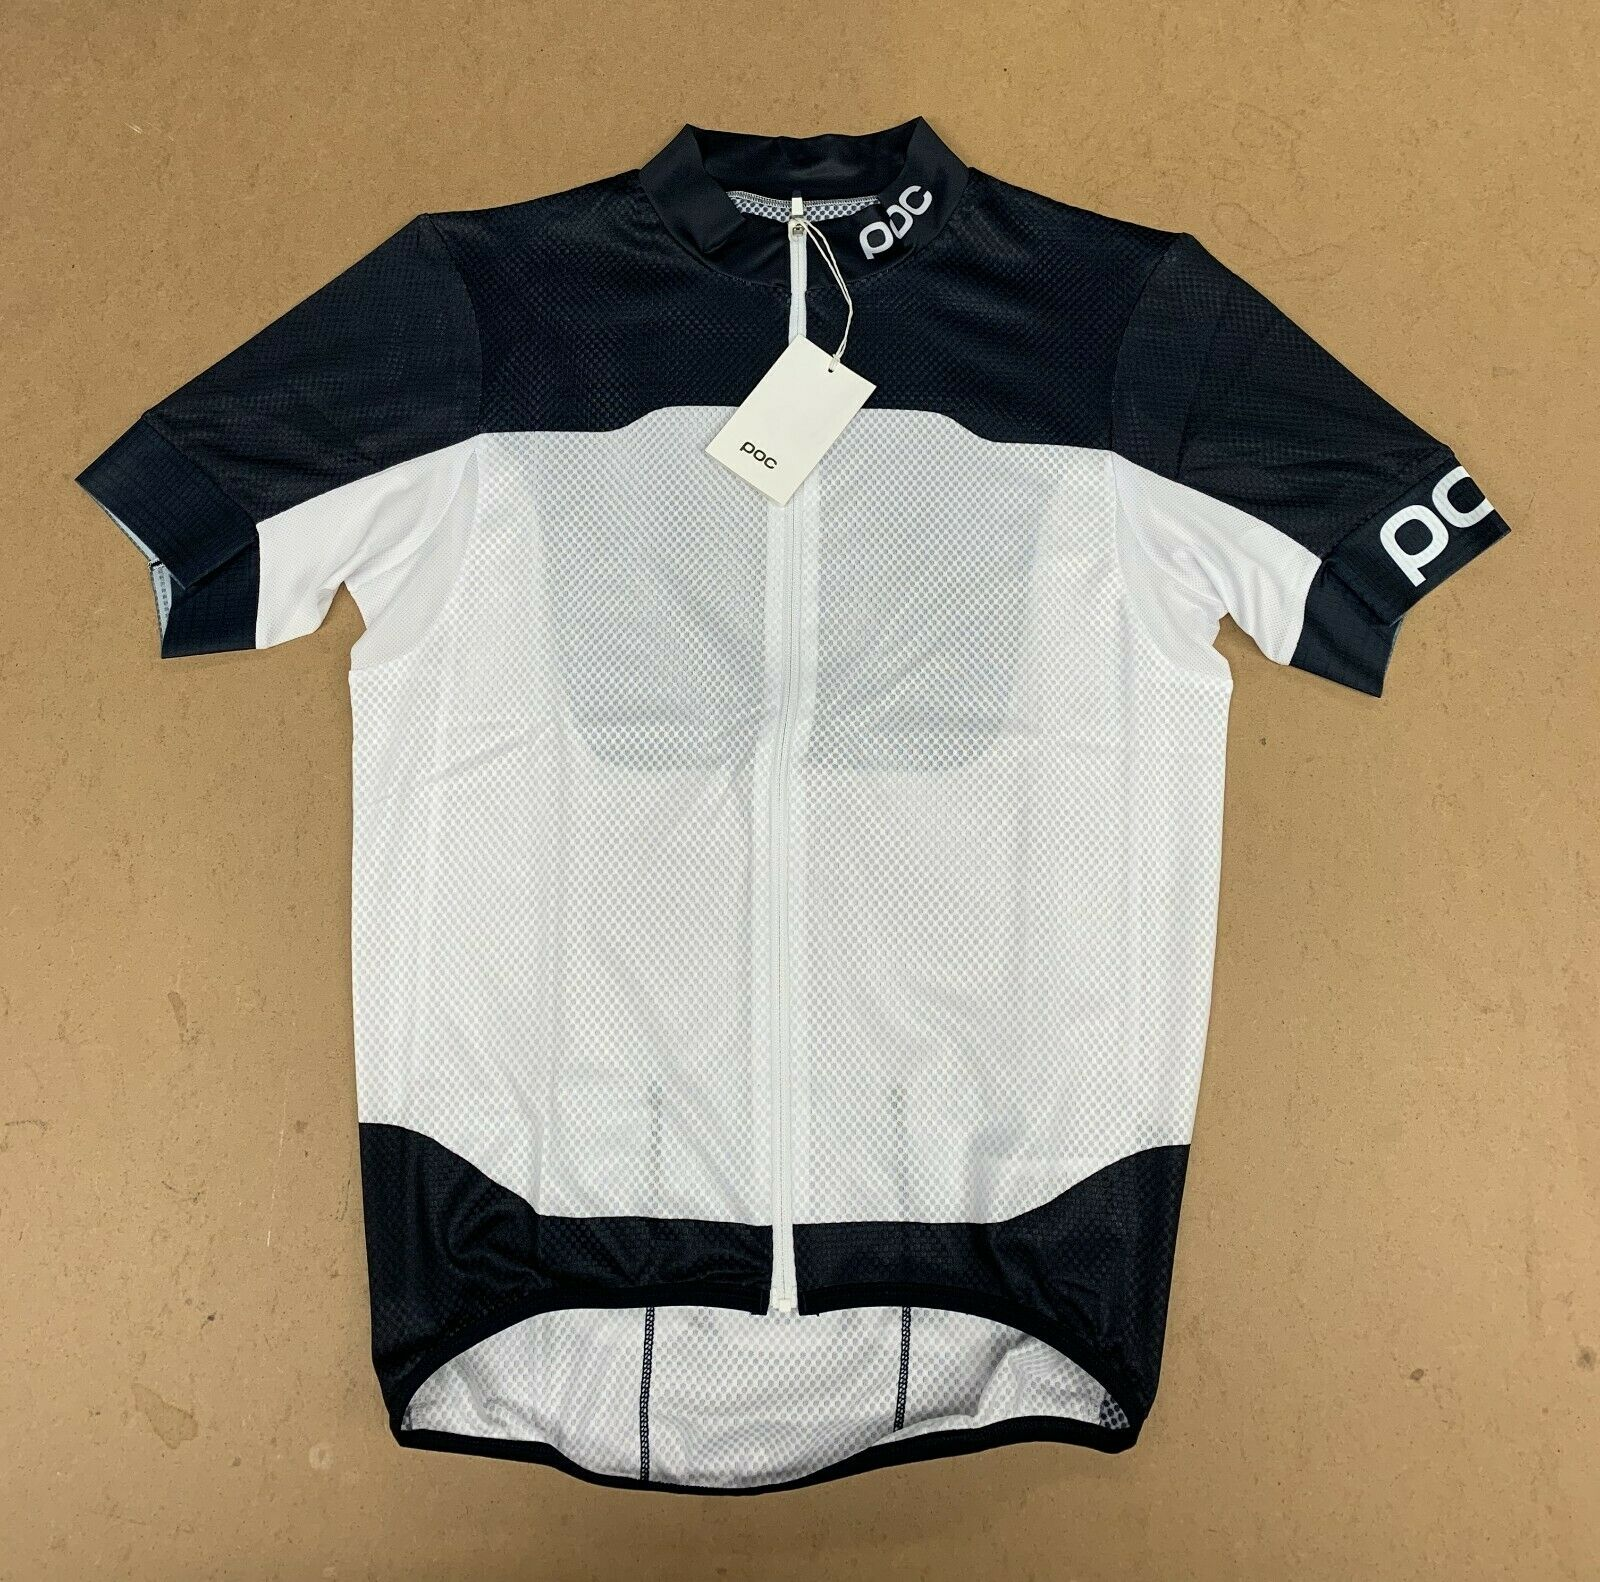 POC Raceday Climbers Jersey Größe Large New with Tags